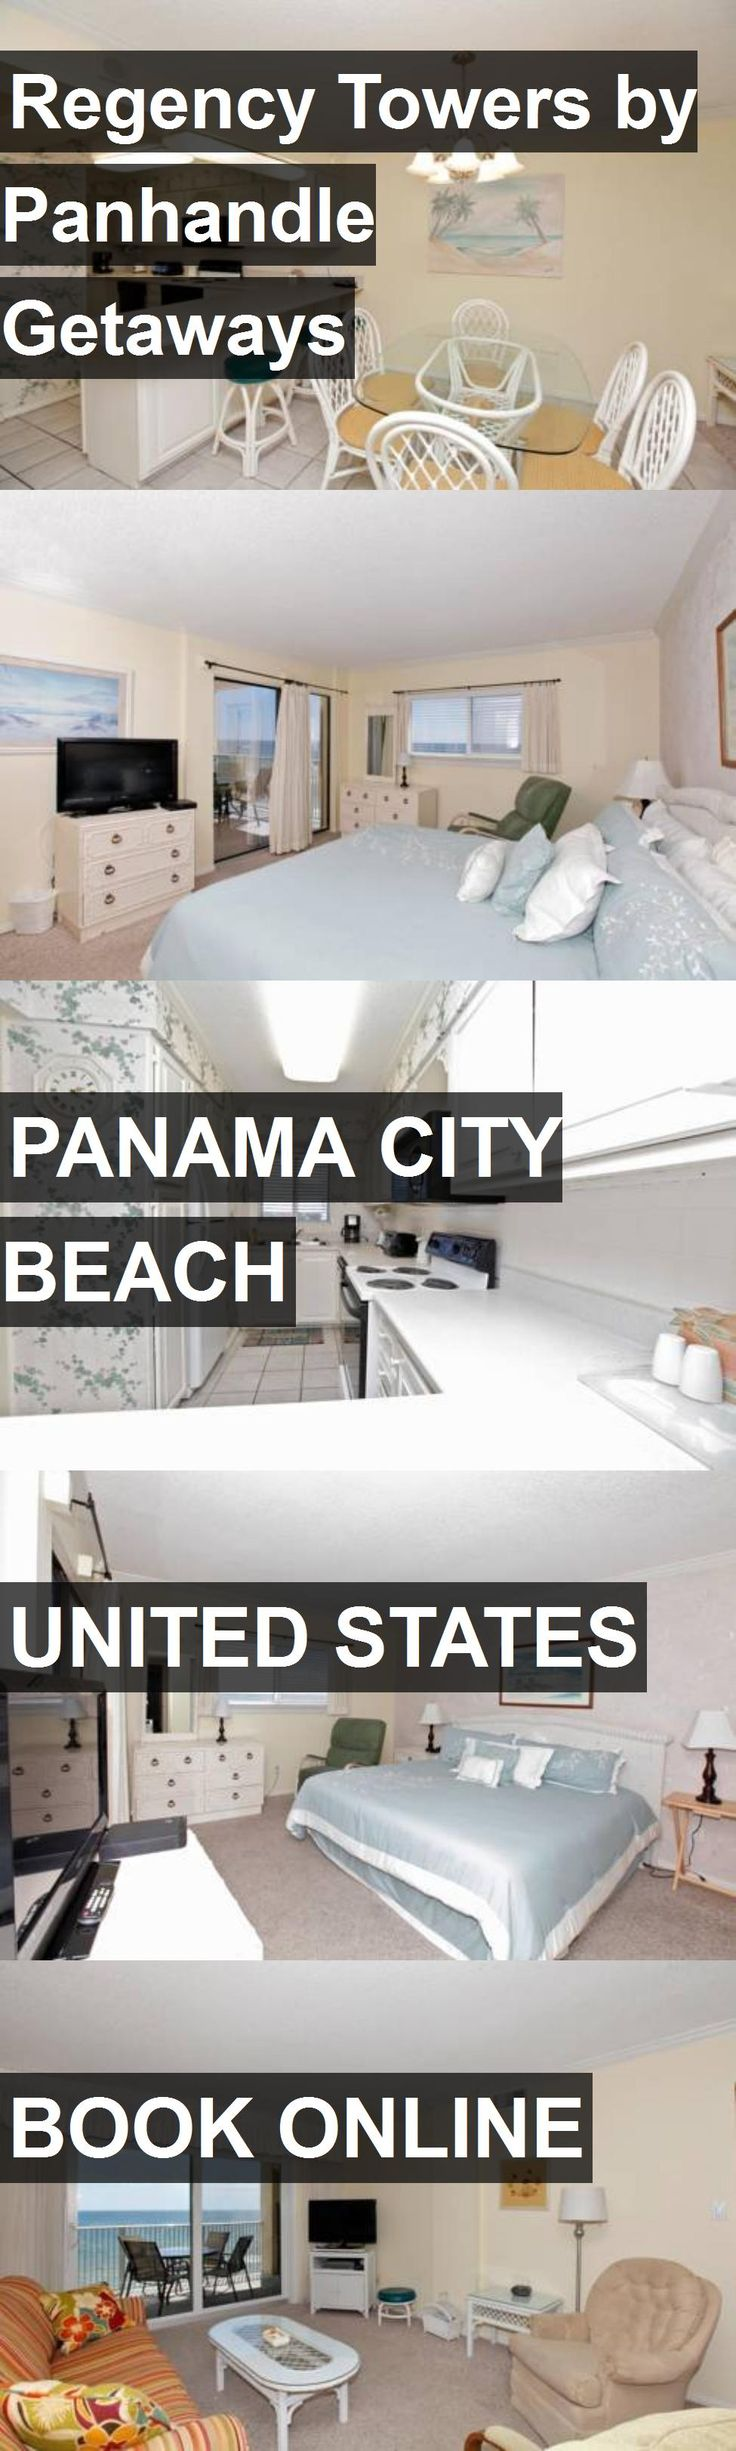 2 bedroom suites in florida%0A Hotel Regency Towers by Panhandle Getaways in Panama City Beach  United  States  For more